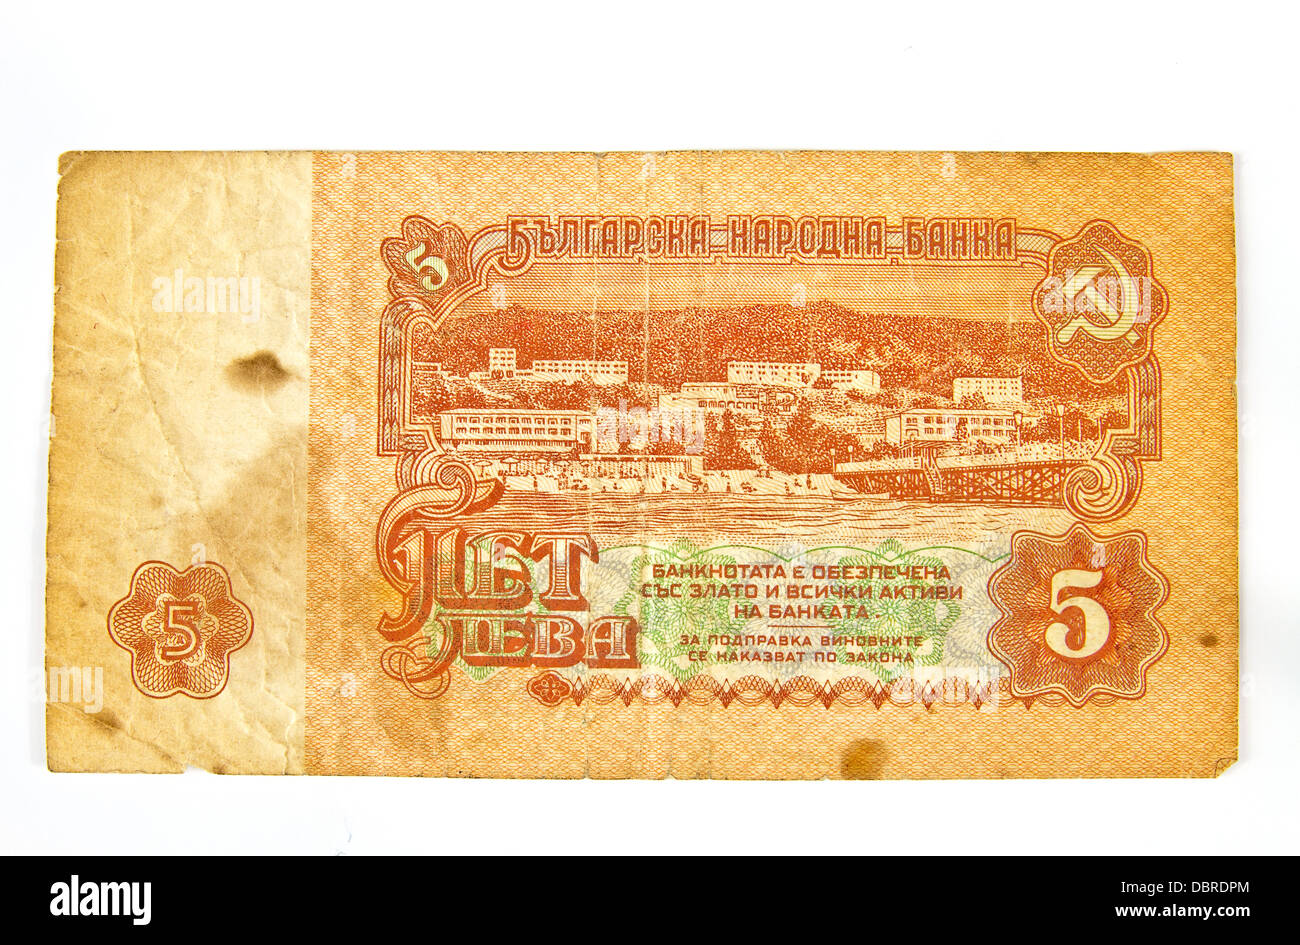 Old Bulgarian banknotes used in the late eighties of the twentieth century - Stock Image